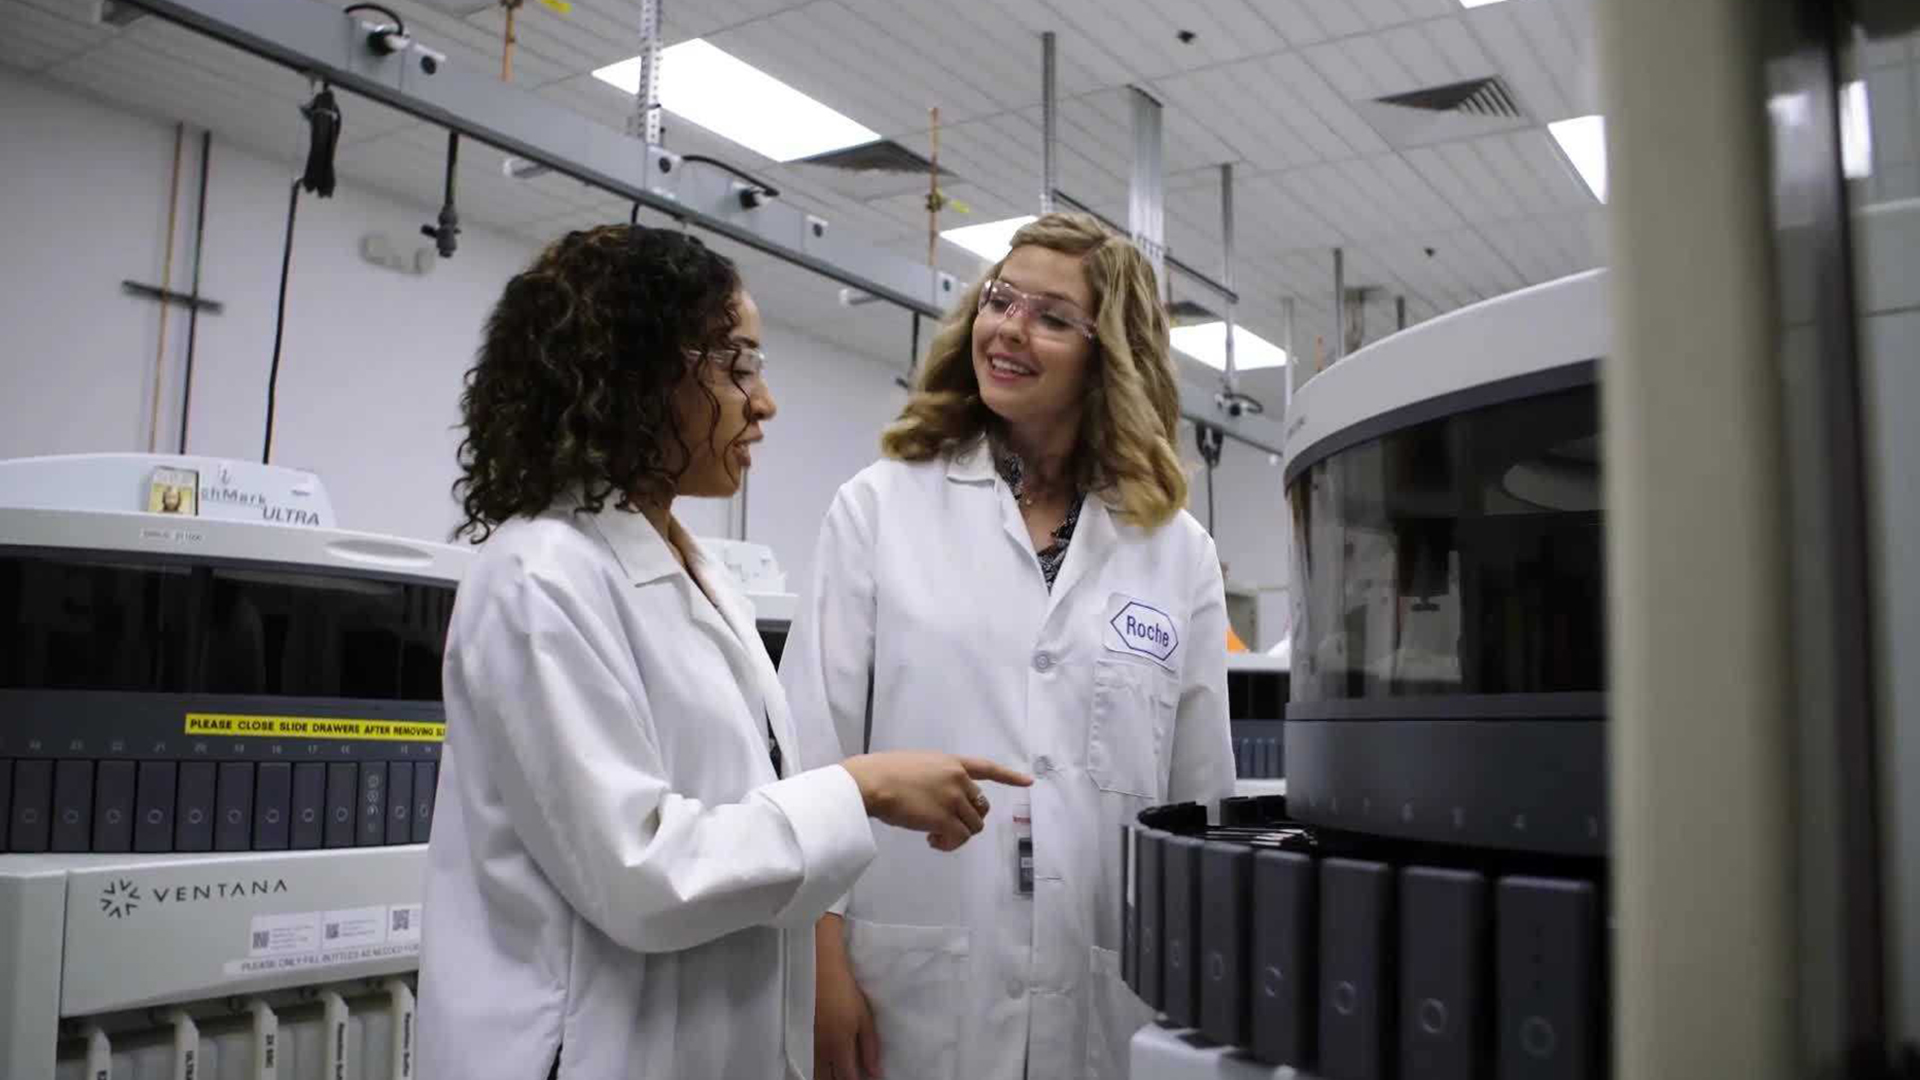 Roche senior manager Heidi Barnett, left, and Empire High School chemistry teacher Hillary Stacey at Roche/Ventana's Oro Valley lab.